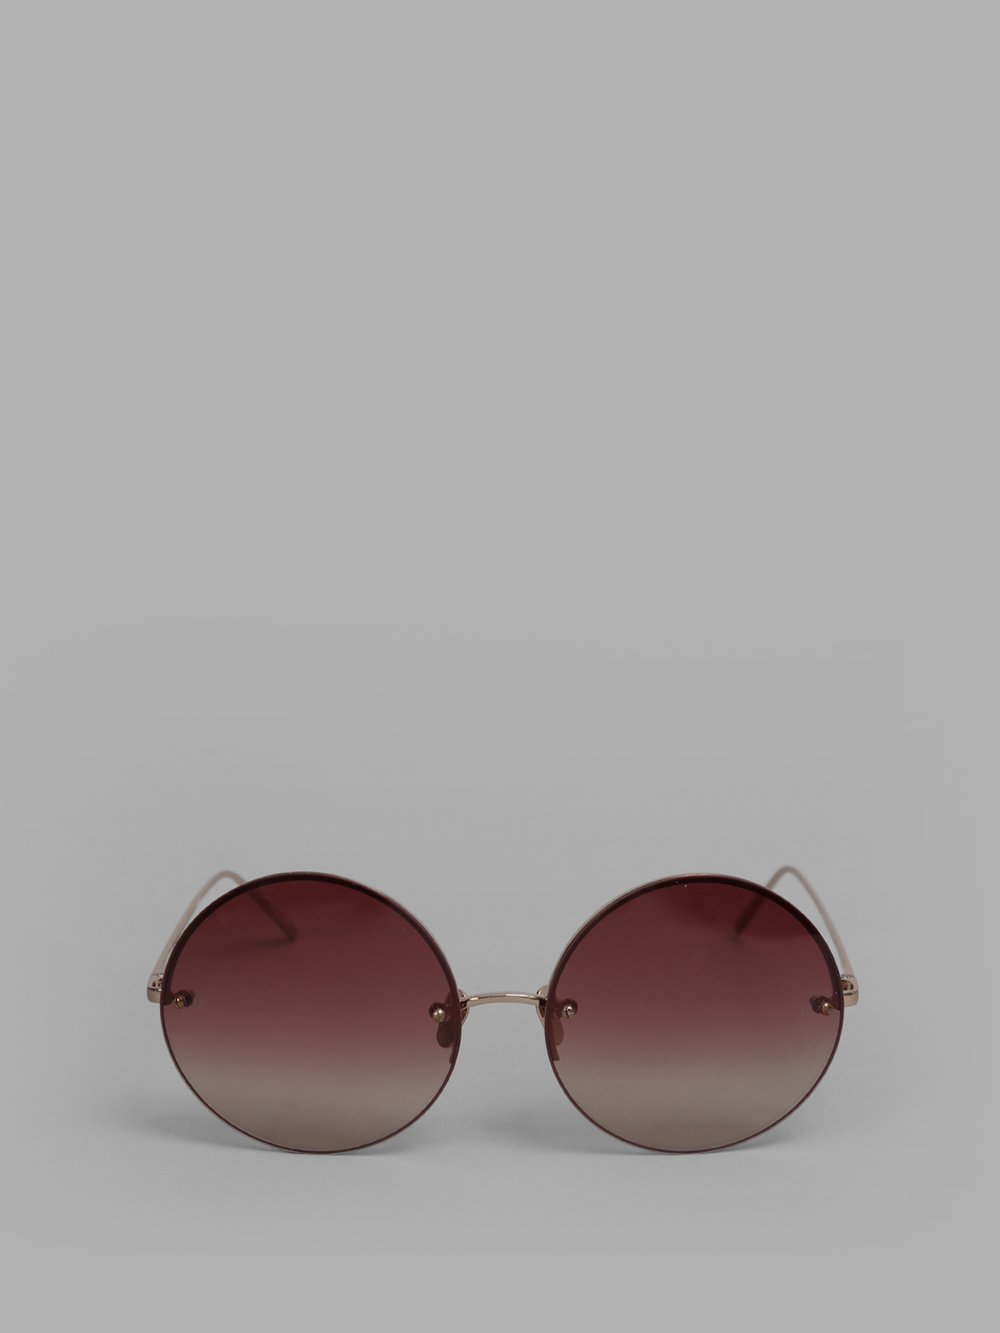 29a37f9ef5a Shop Linda Farrow Rose Gold And Burgundy Sunglasses In 18 Carat Rose ...